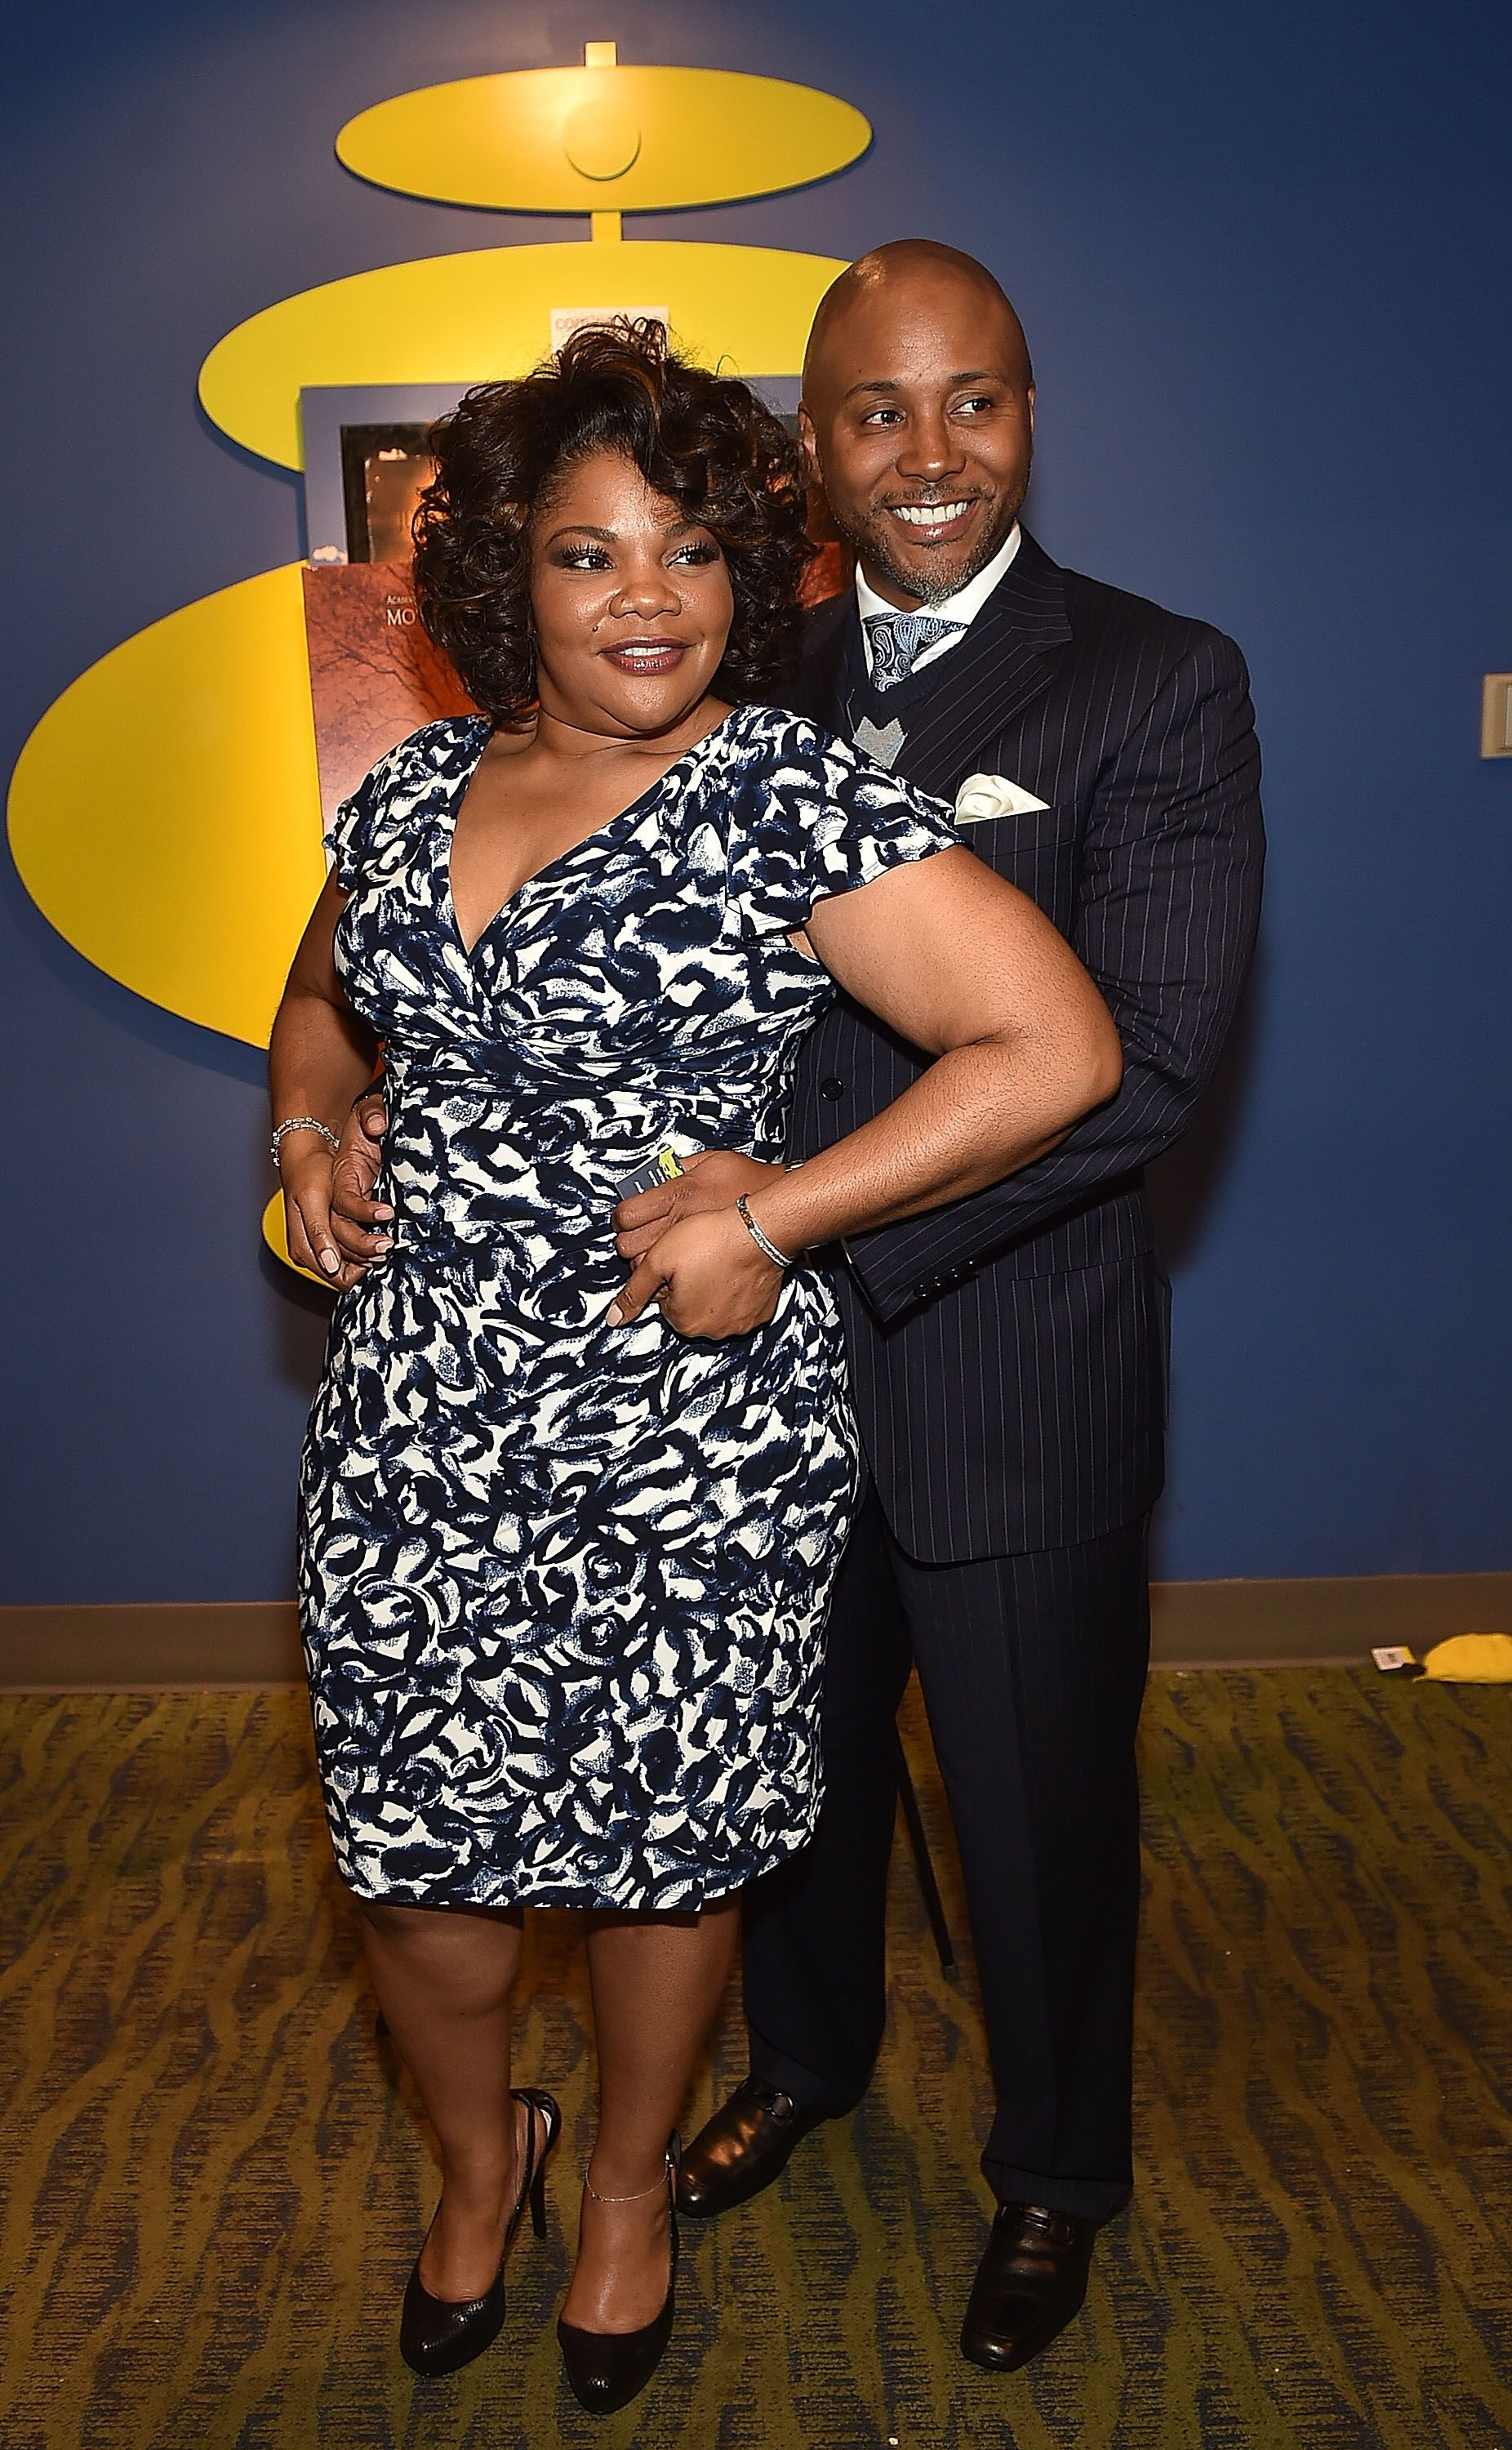 """Actress Mo'Nique and Sidney Hicks at the Atlanta screening of """"Blackbird"""" at Midtown Art Cinema Theatre on April 7, 2015 